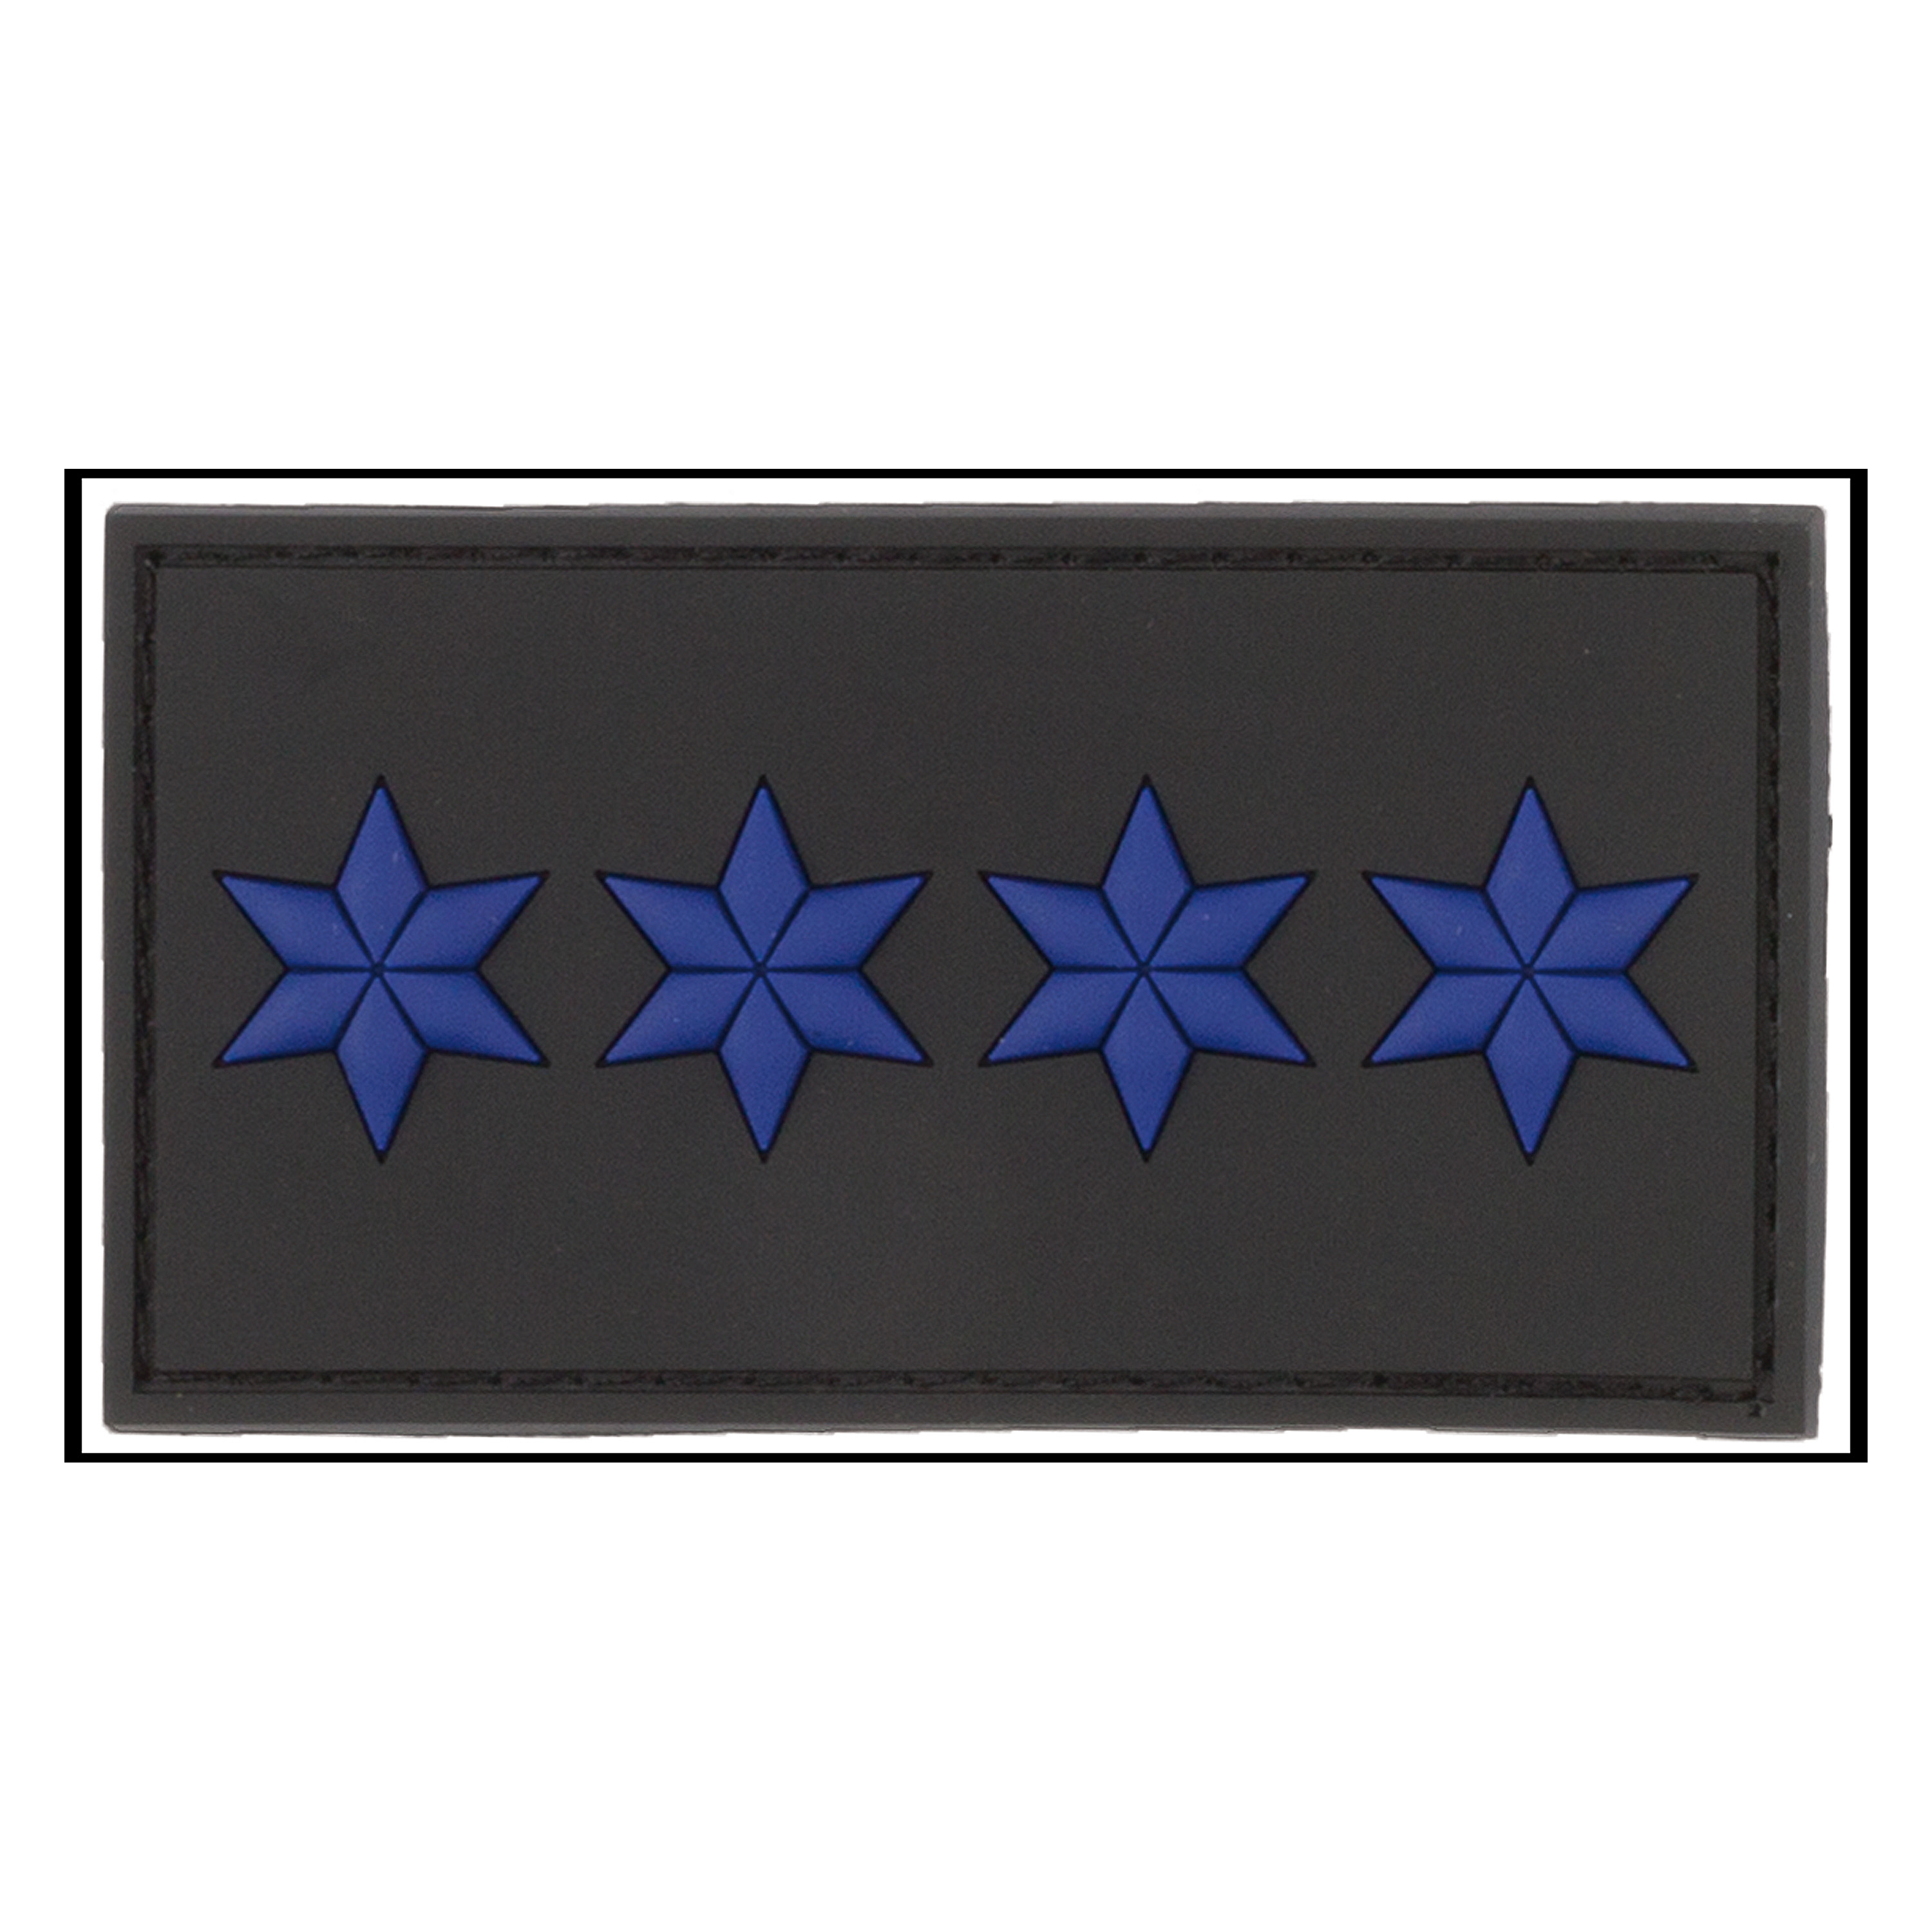 Patch 3D Grade Brigadier Major noir